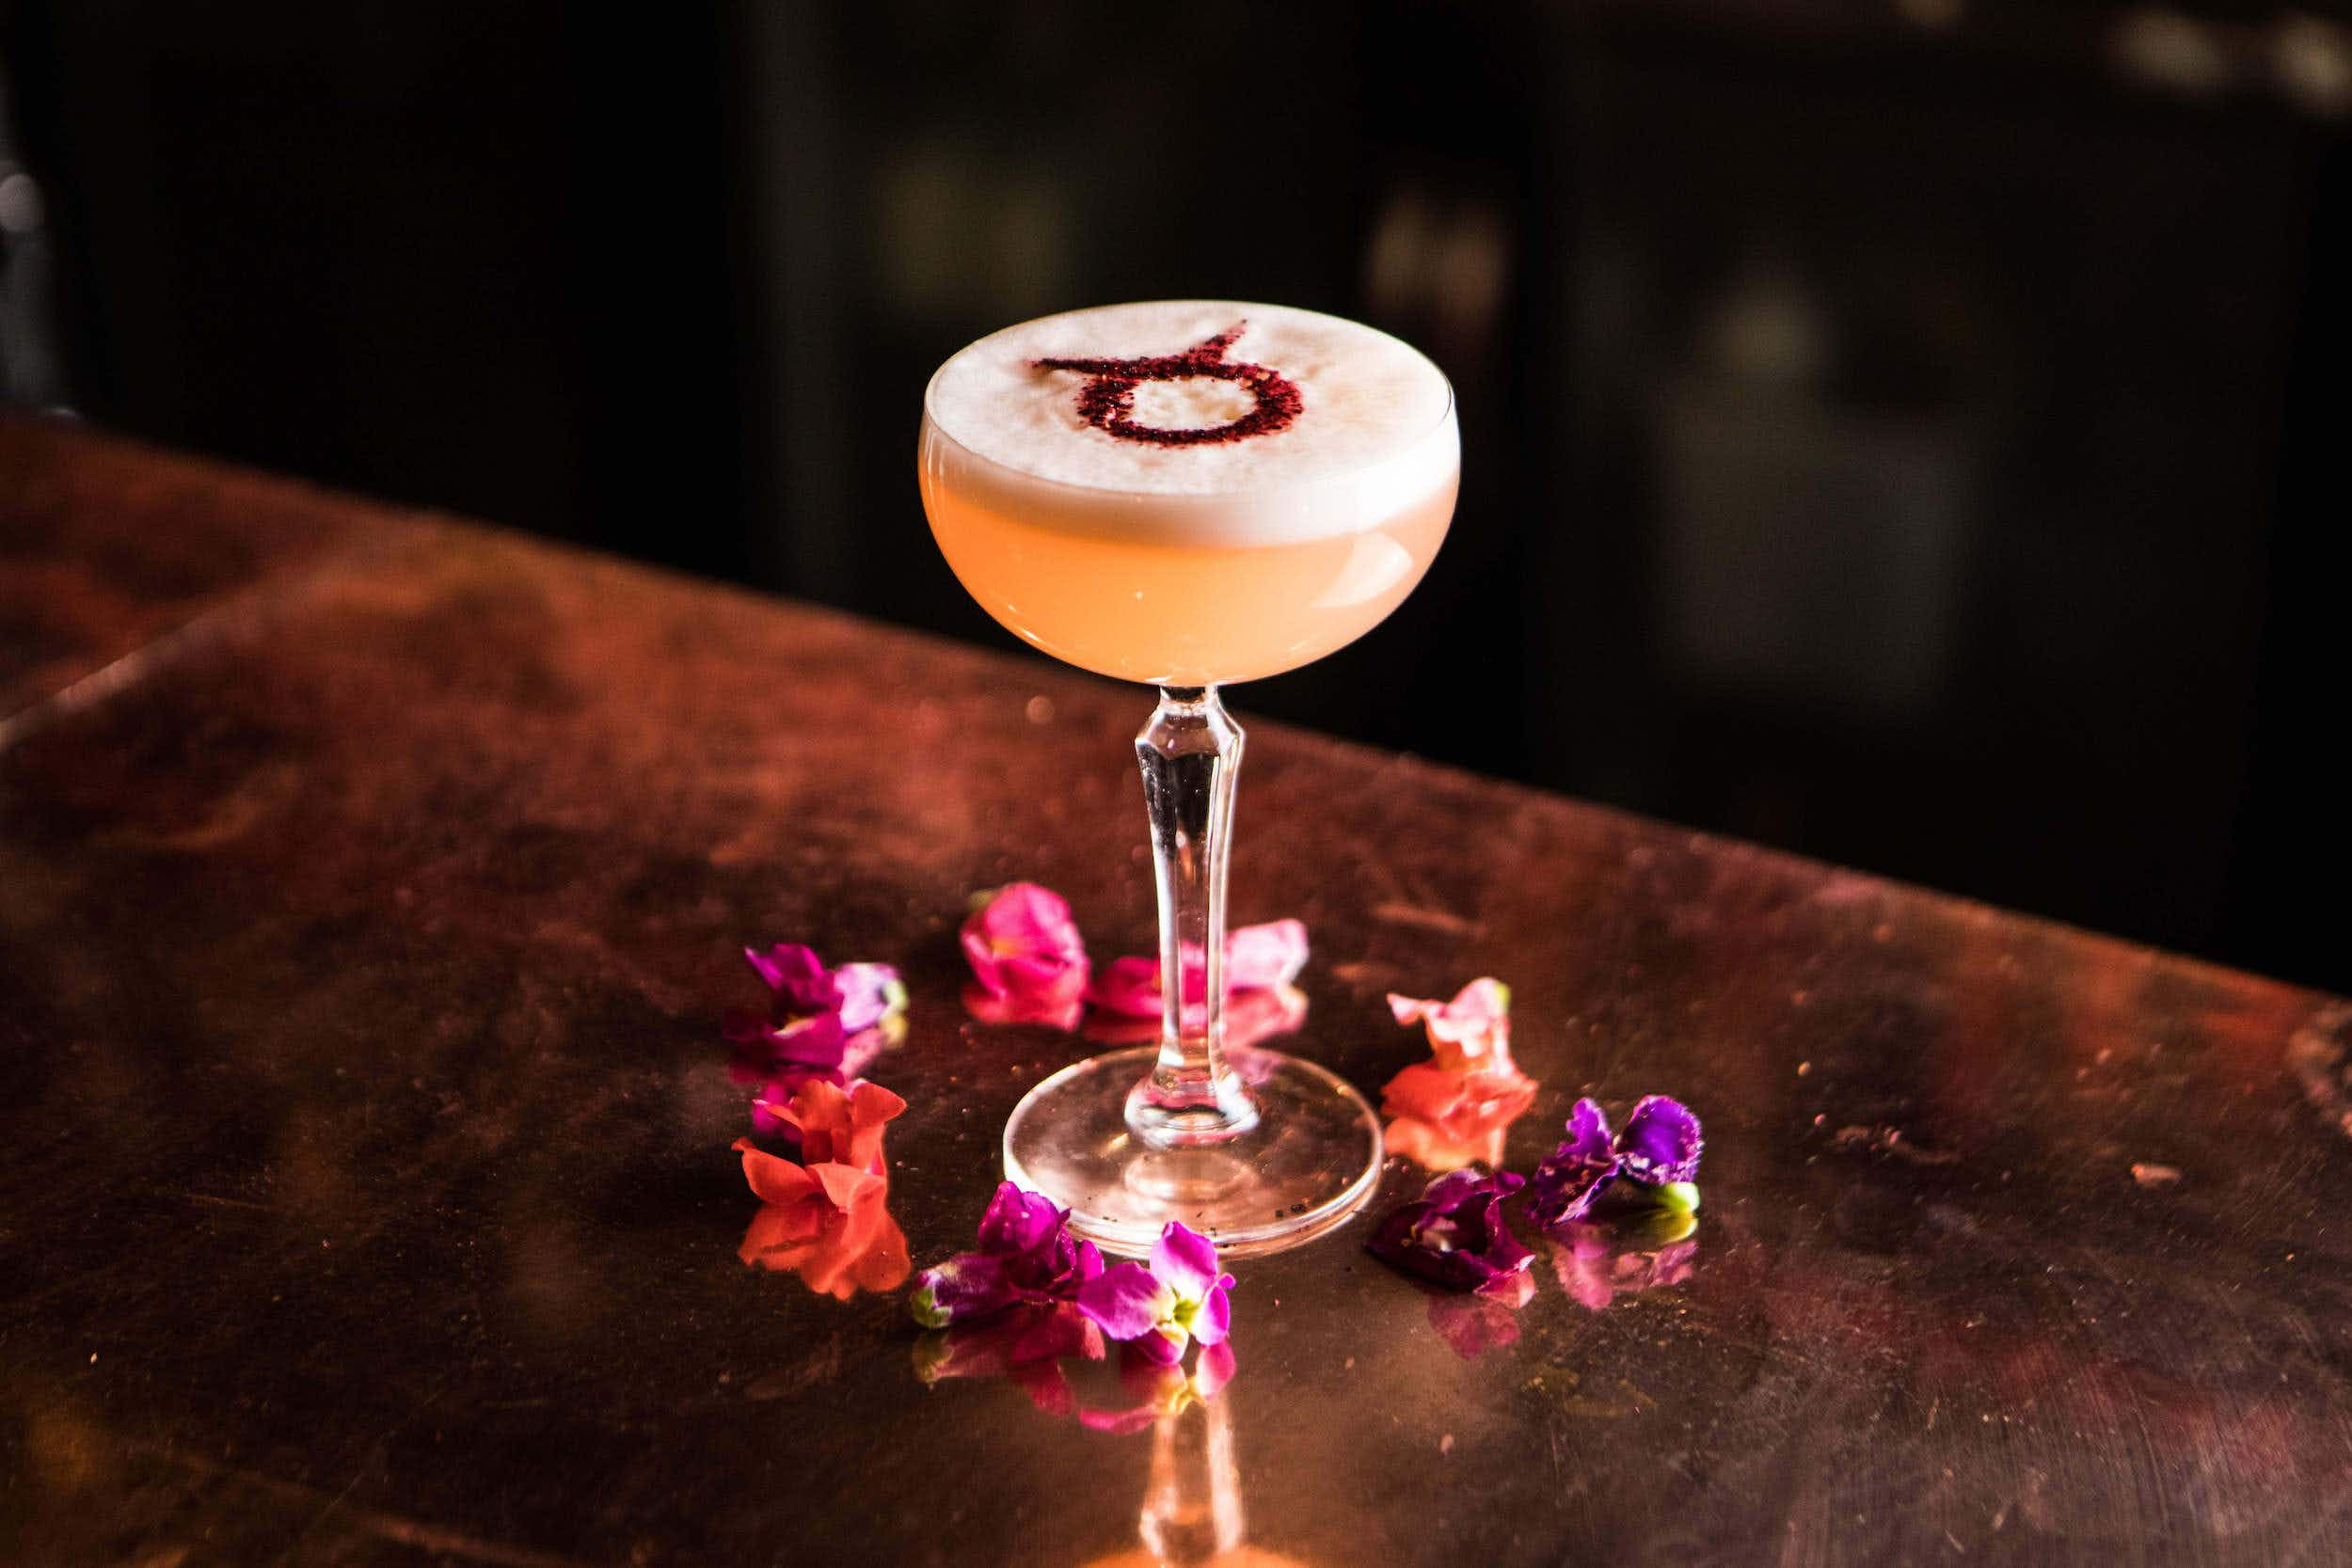 This bar will serve you a horoscope cocktail based on your zodiac sign